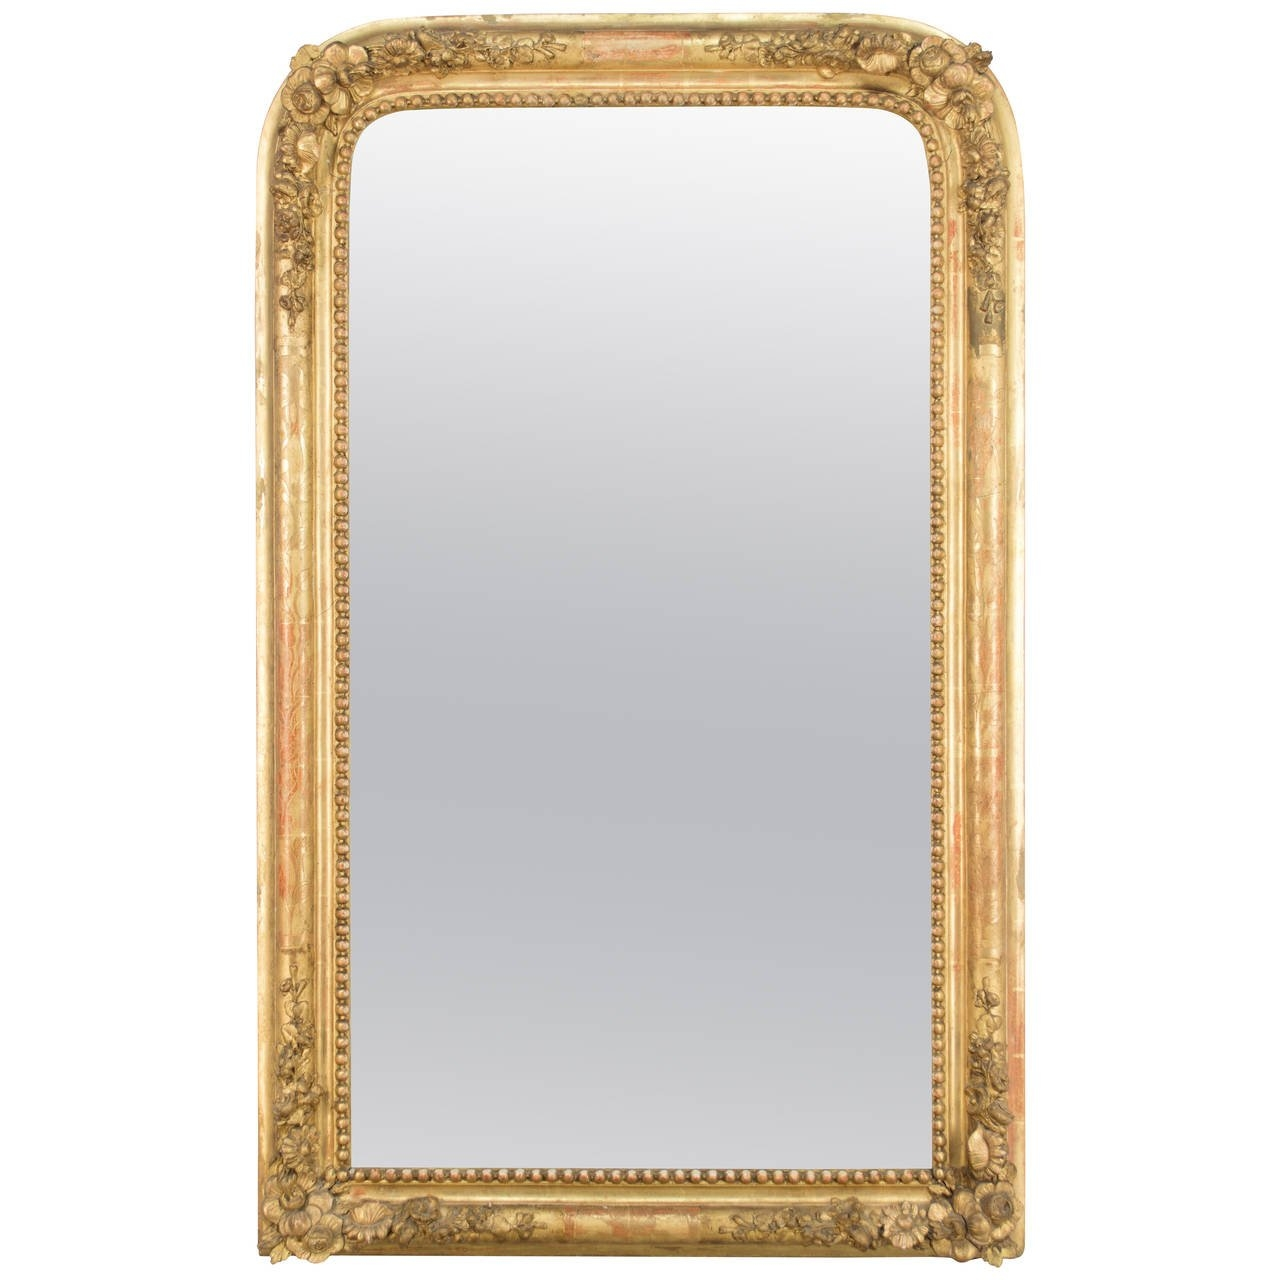 19th Century French Gilt Mirror For Sale At 1stdibs With French Gilt Mirror (Image 2 of 15)